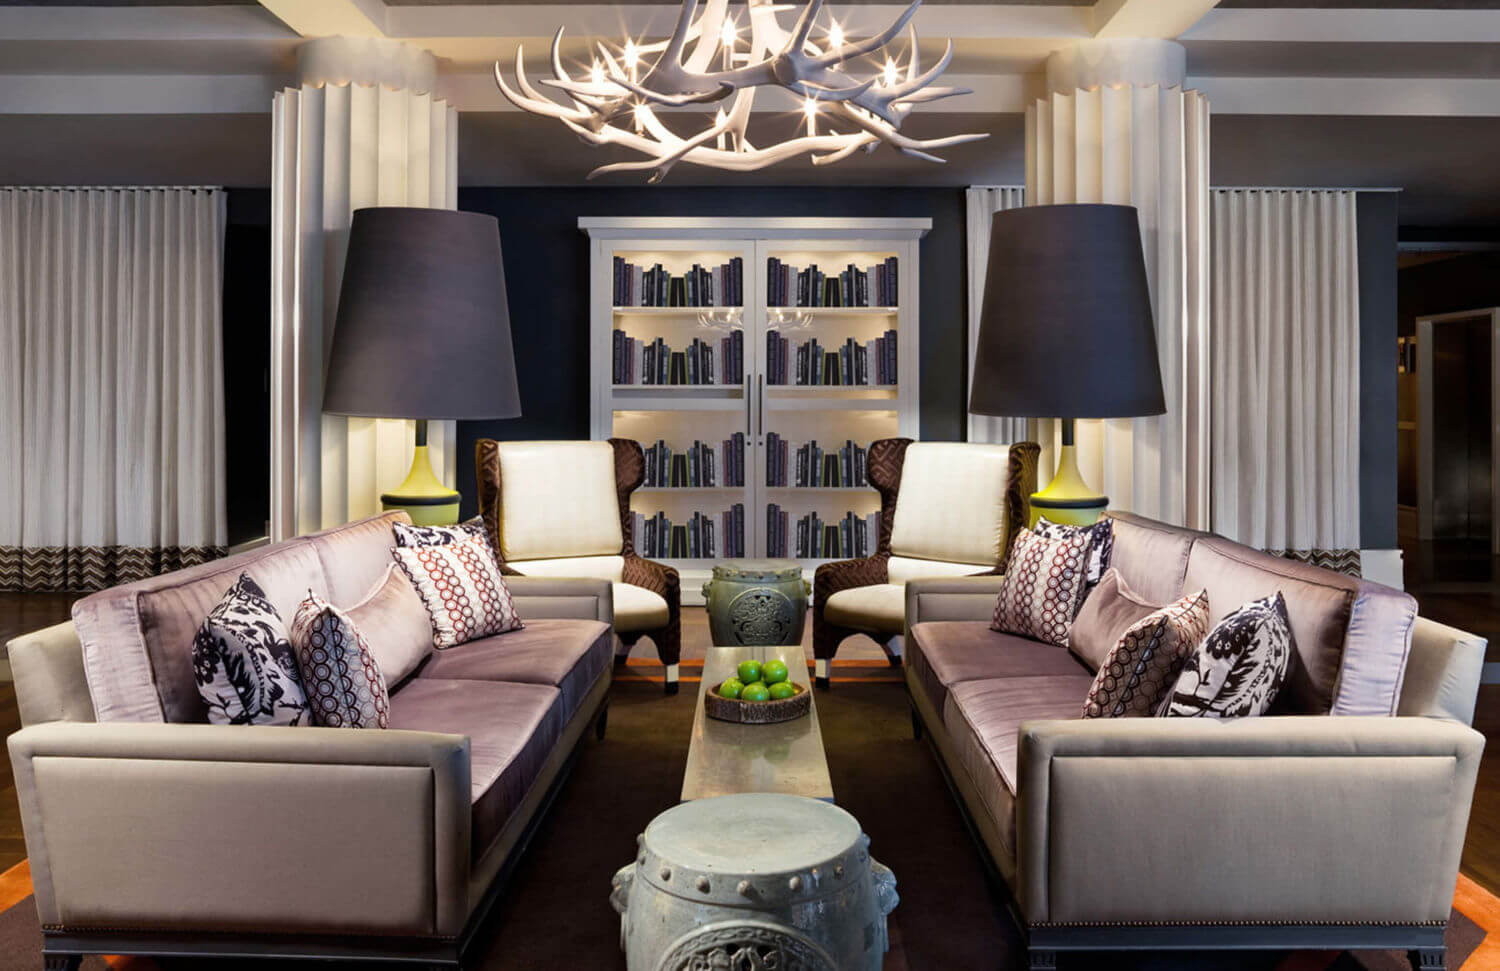 Hotel chic for Hotel chic decor